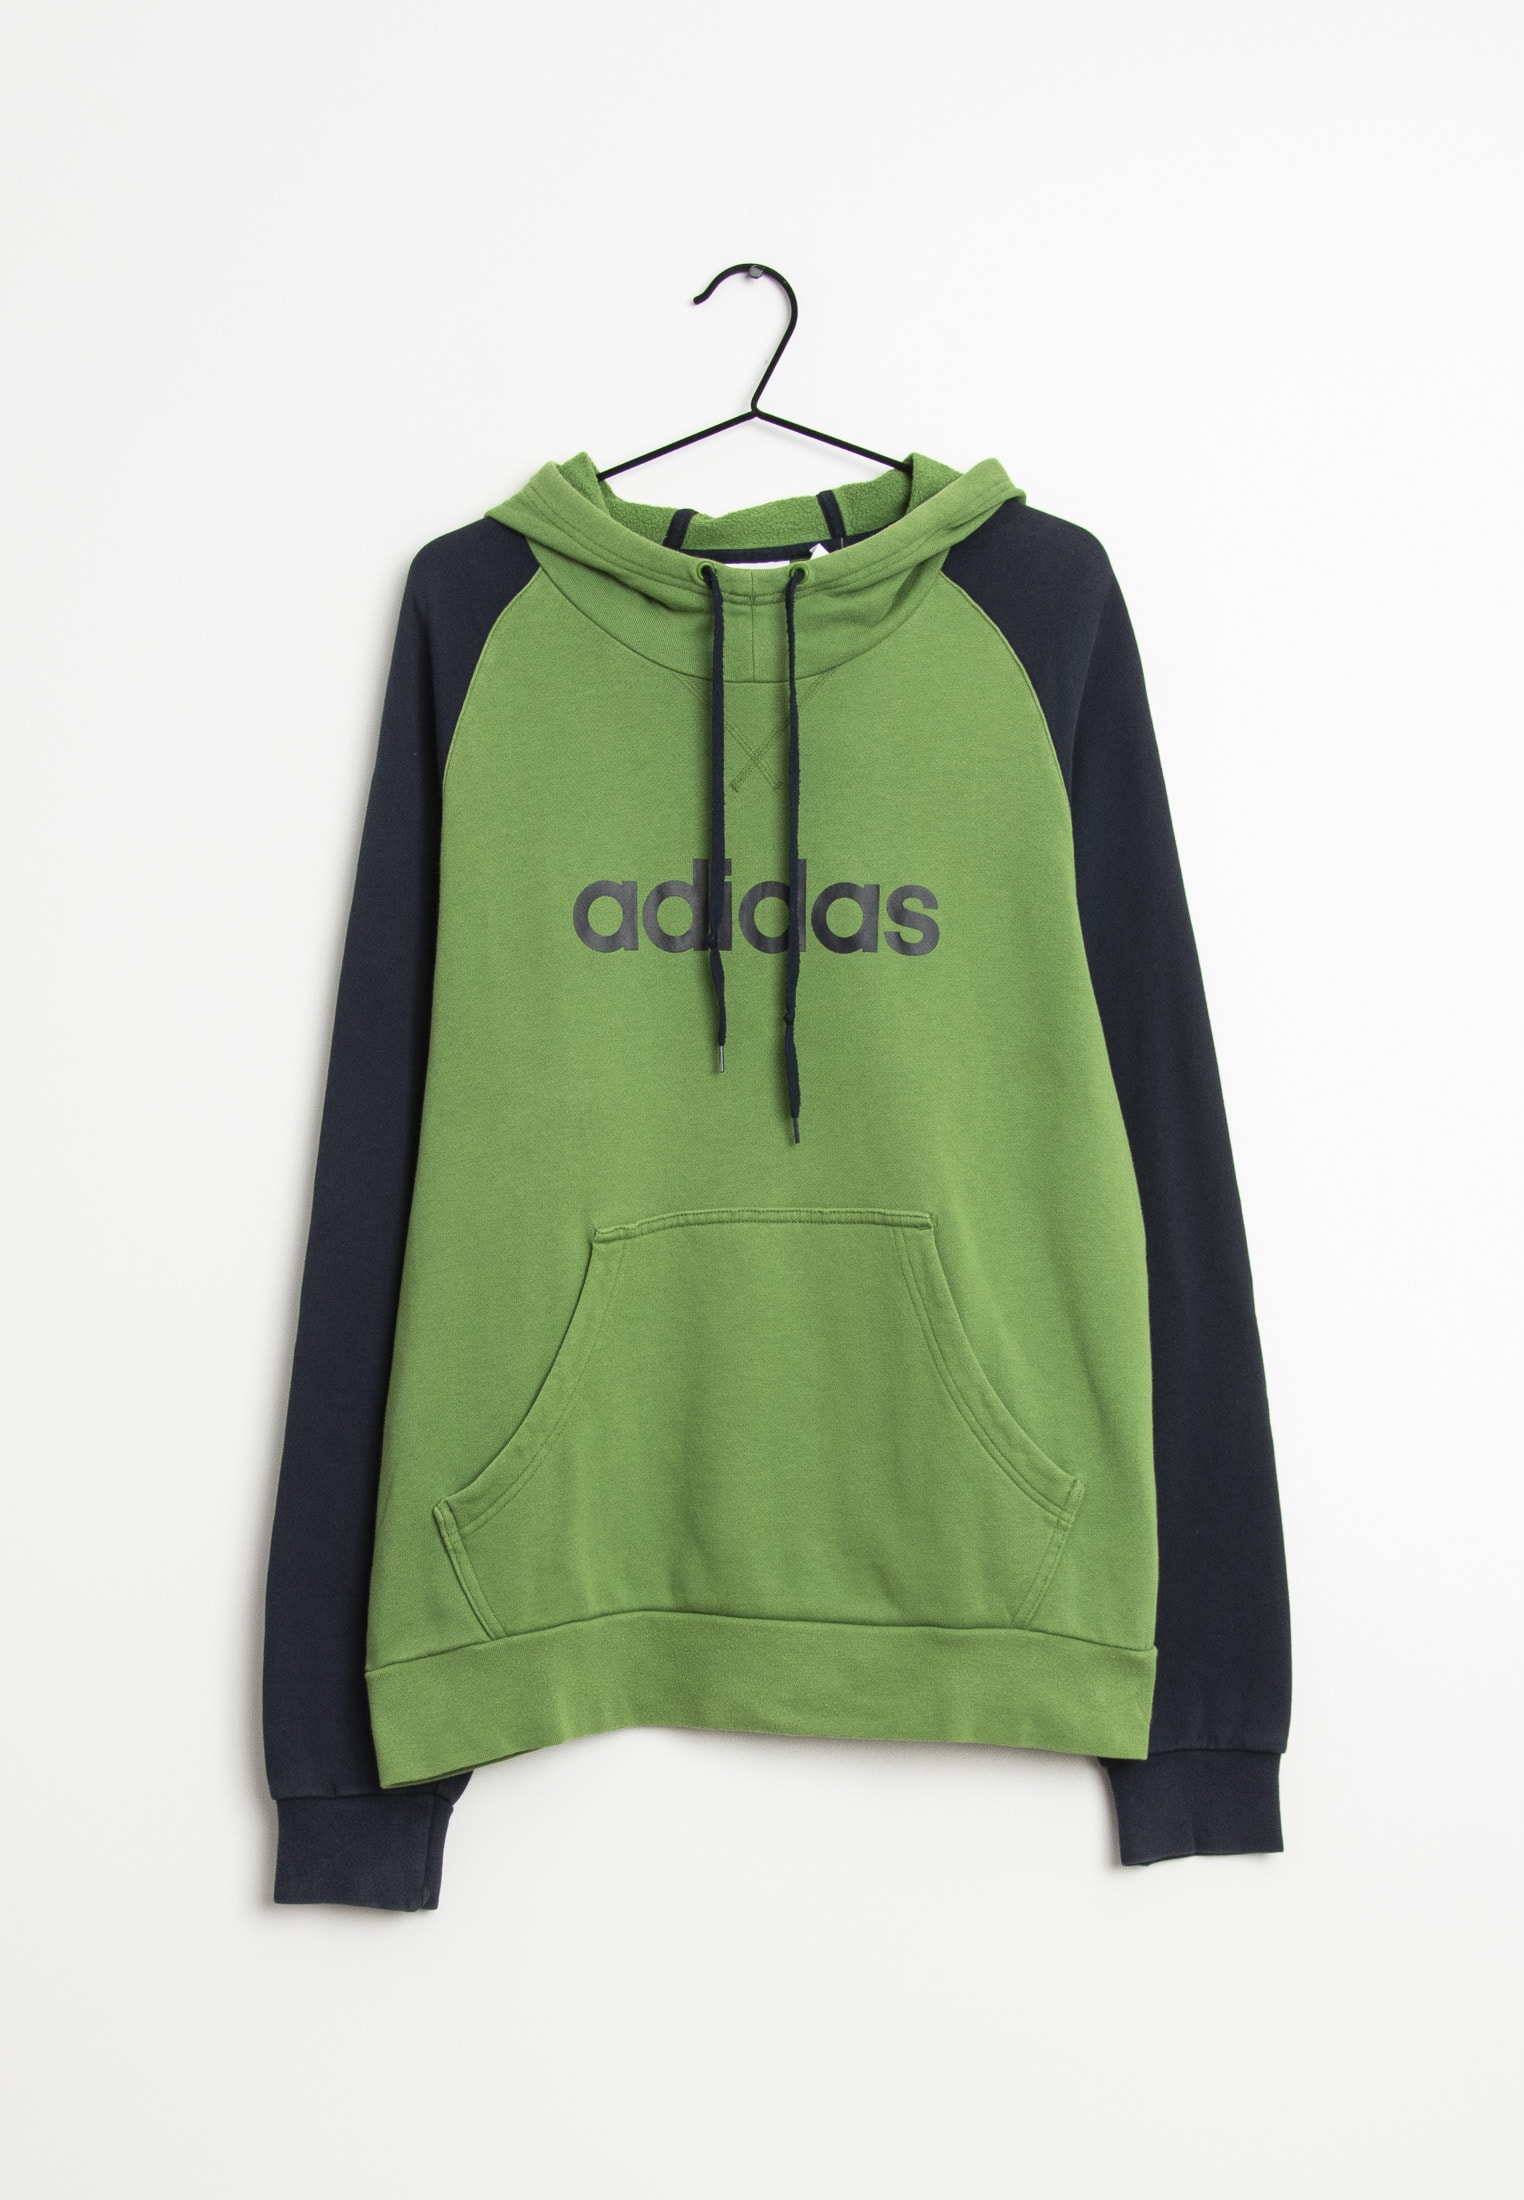 adidas Originals Sweat / Fleece Grün Gr.M